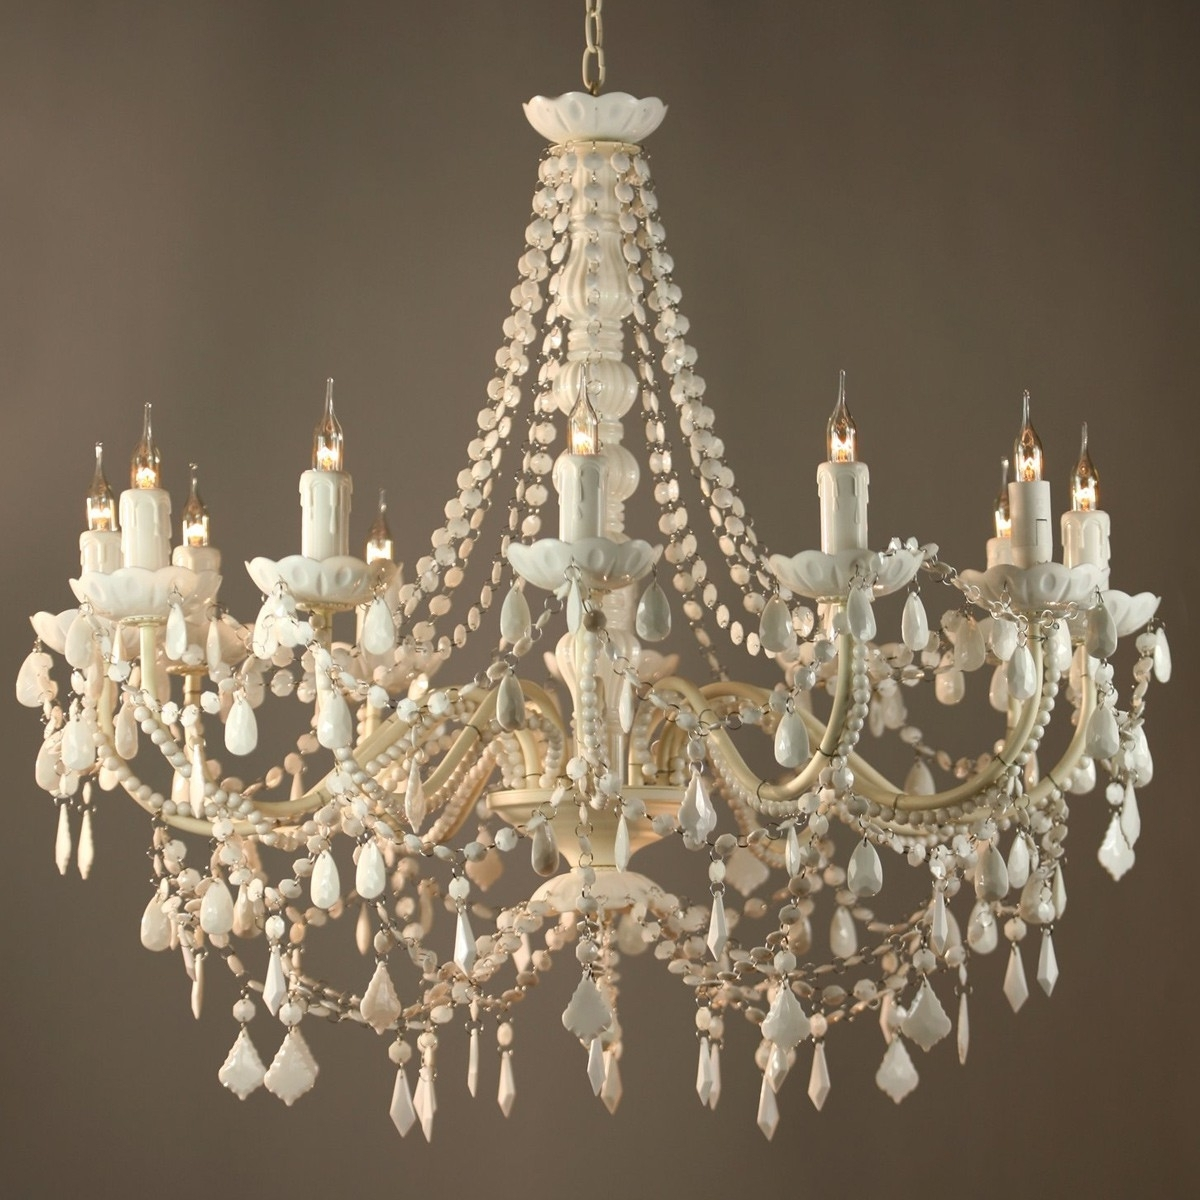 Vintage Style Chandeliers (View 3 of 20)